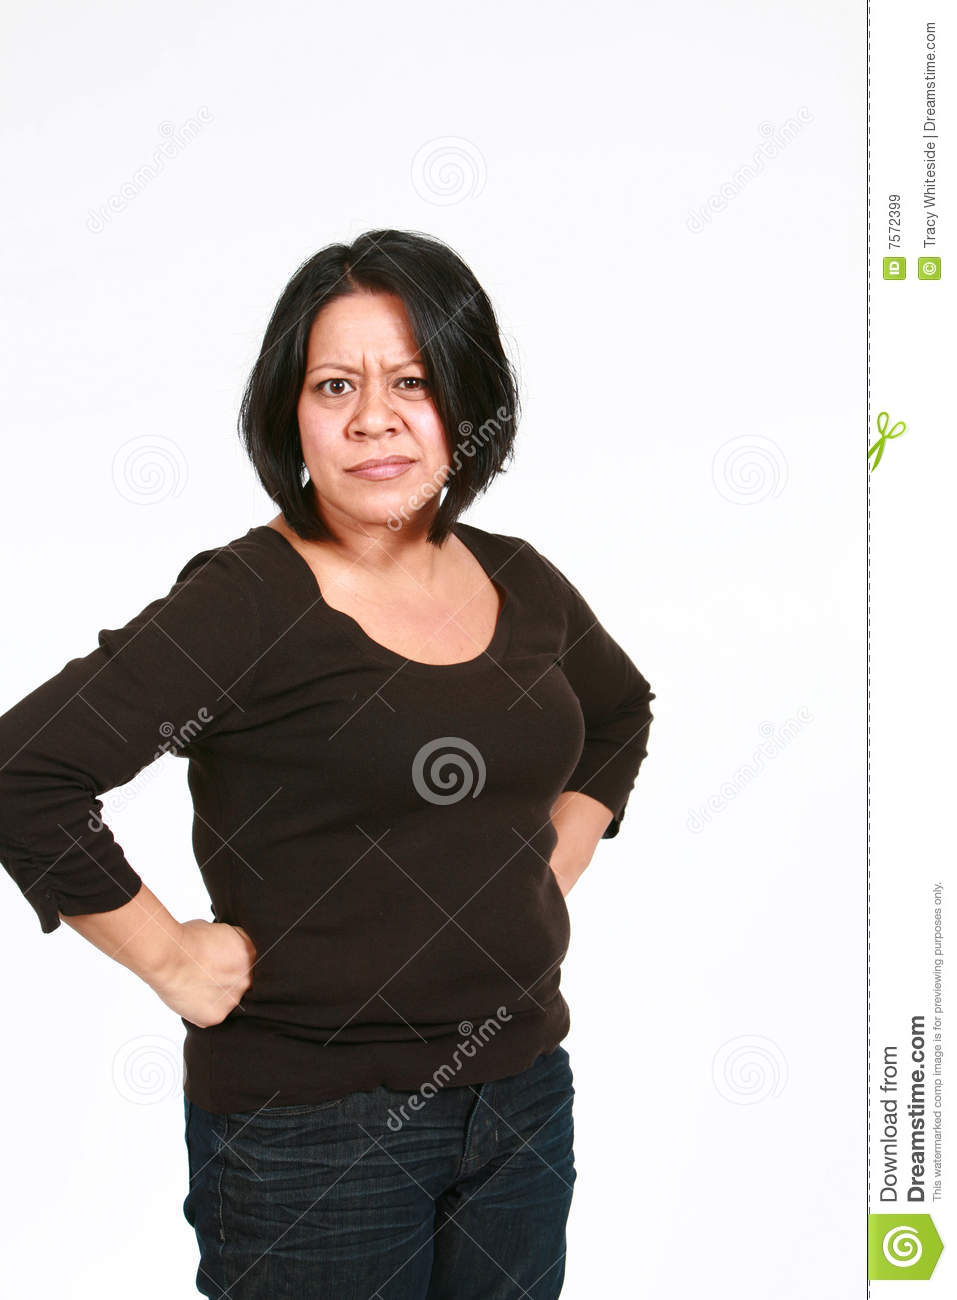 More similar stock images of   Sassy latina woman  Sassy White Woman